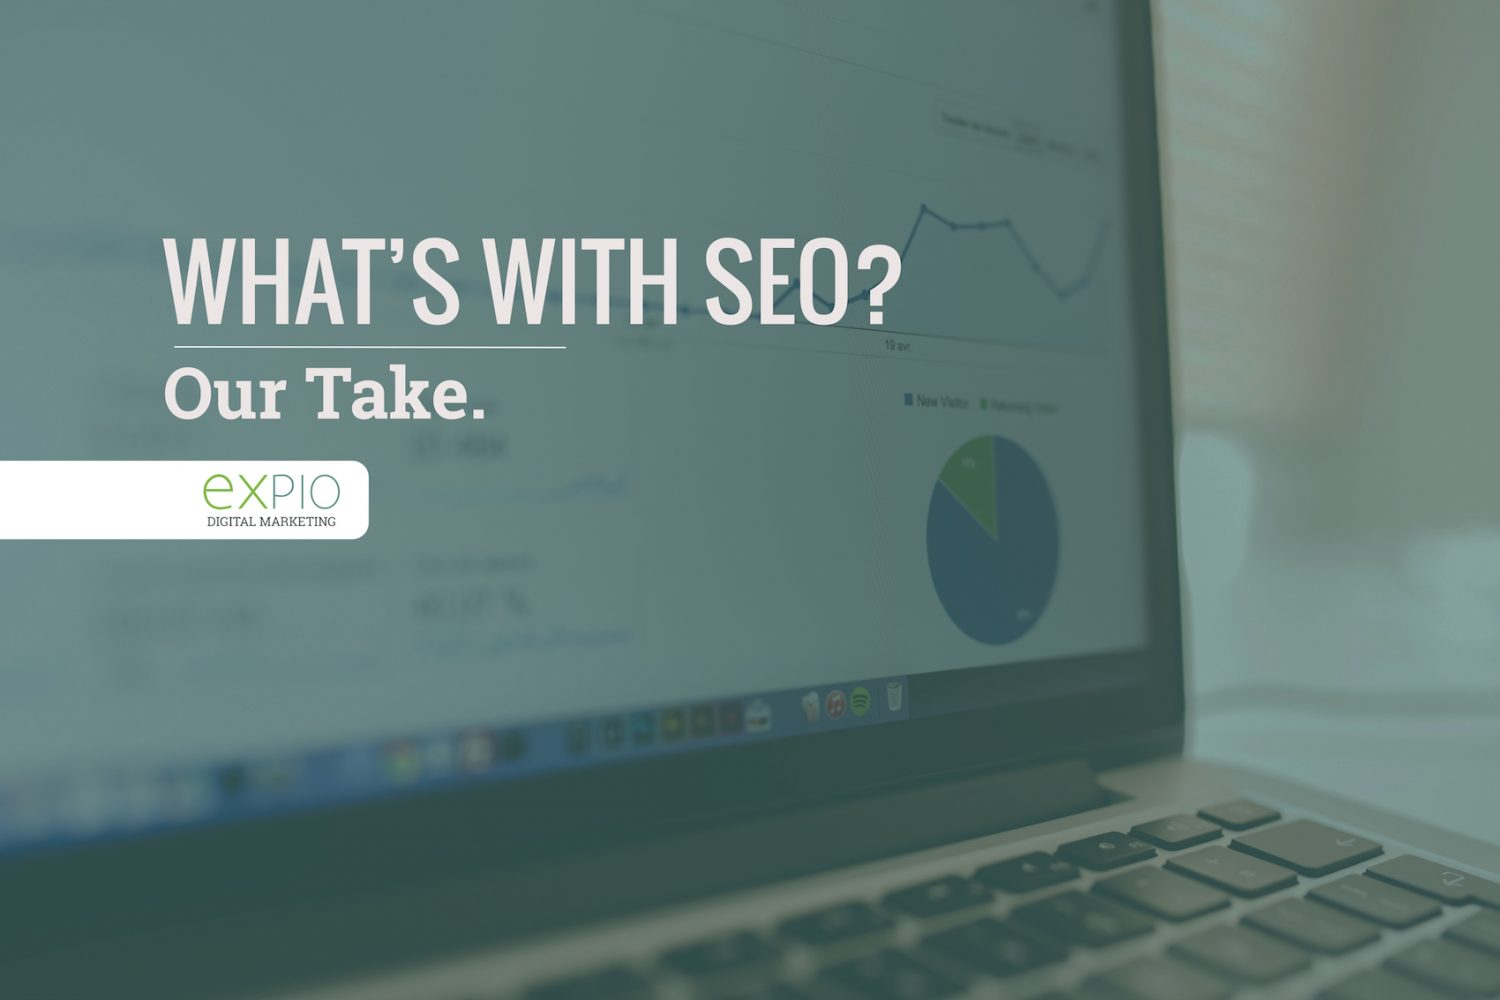 whats with seo expio digital marketing our take